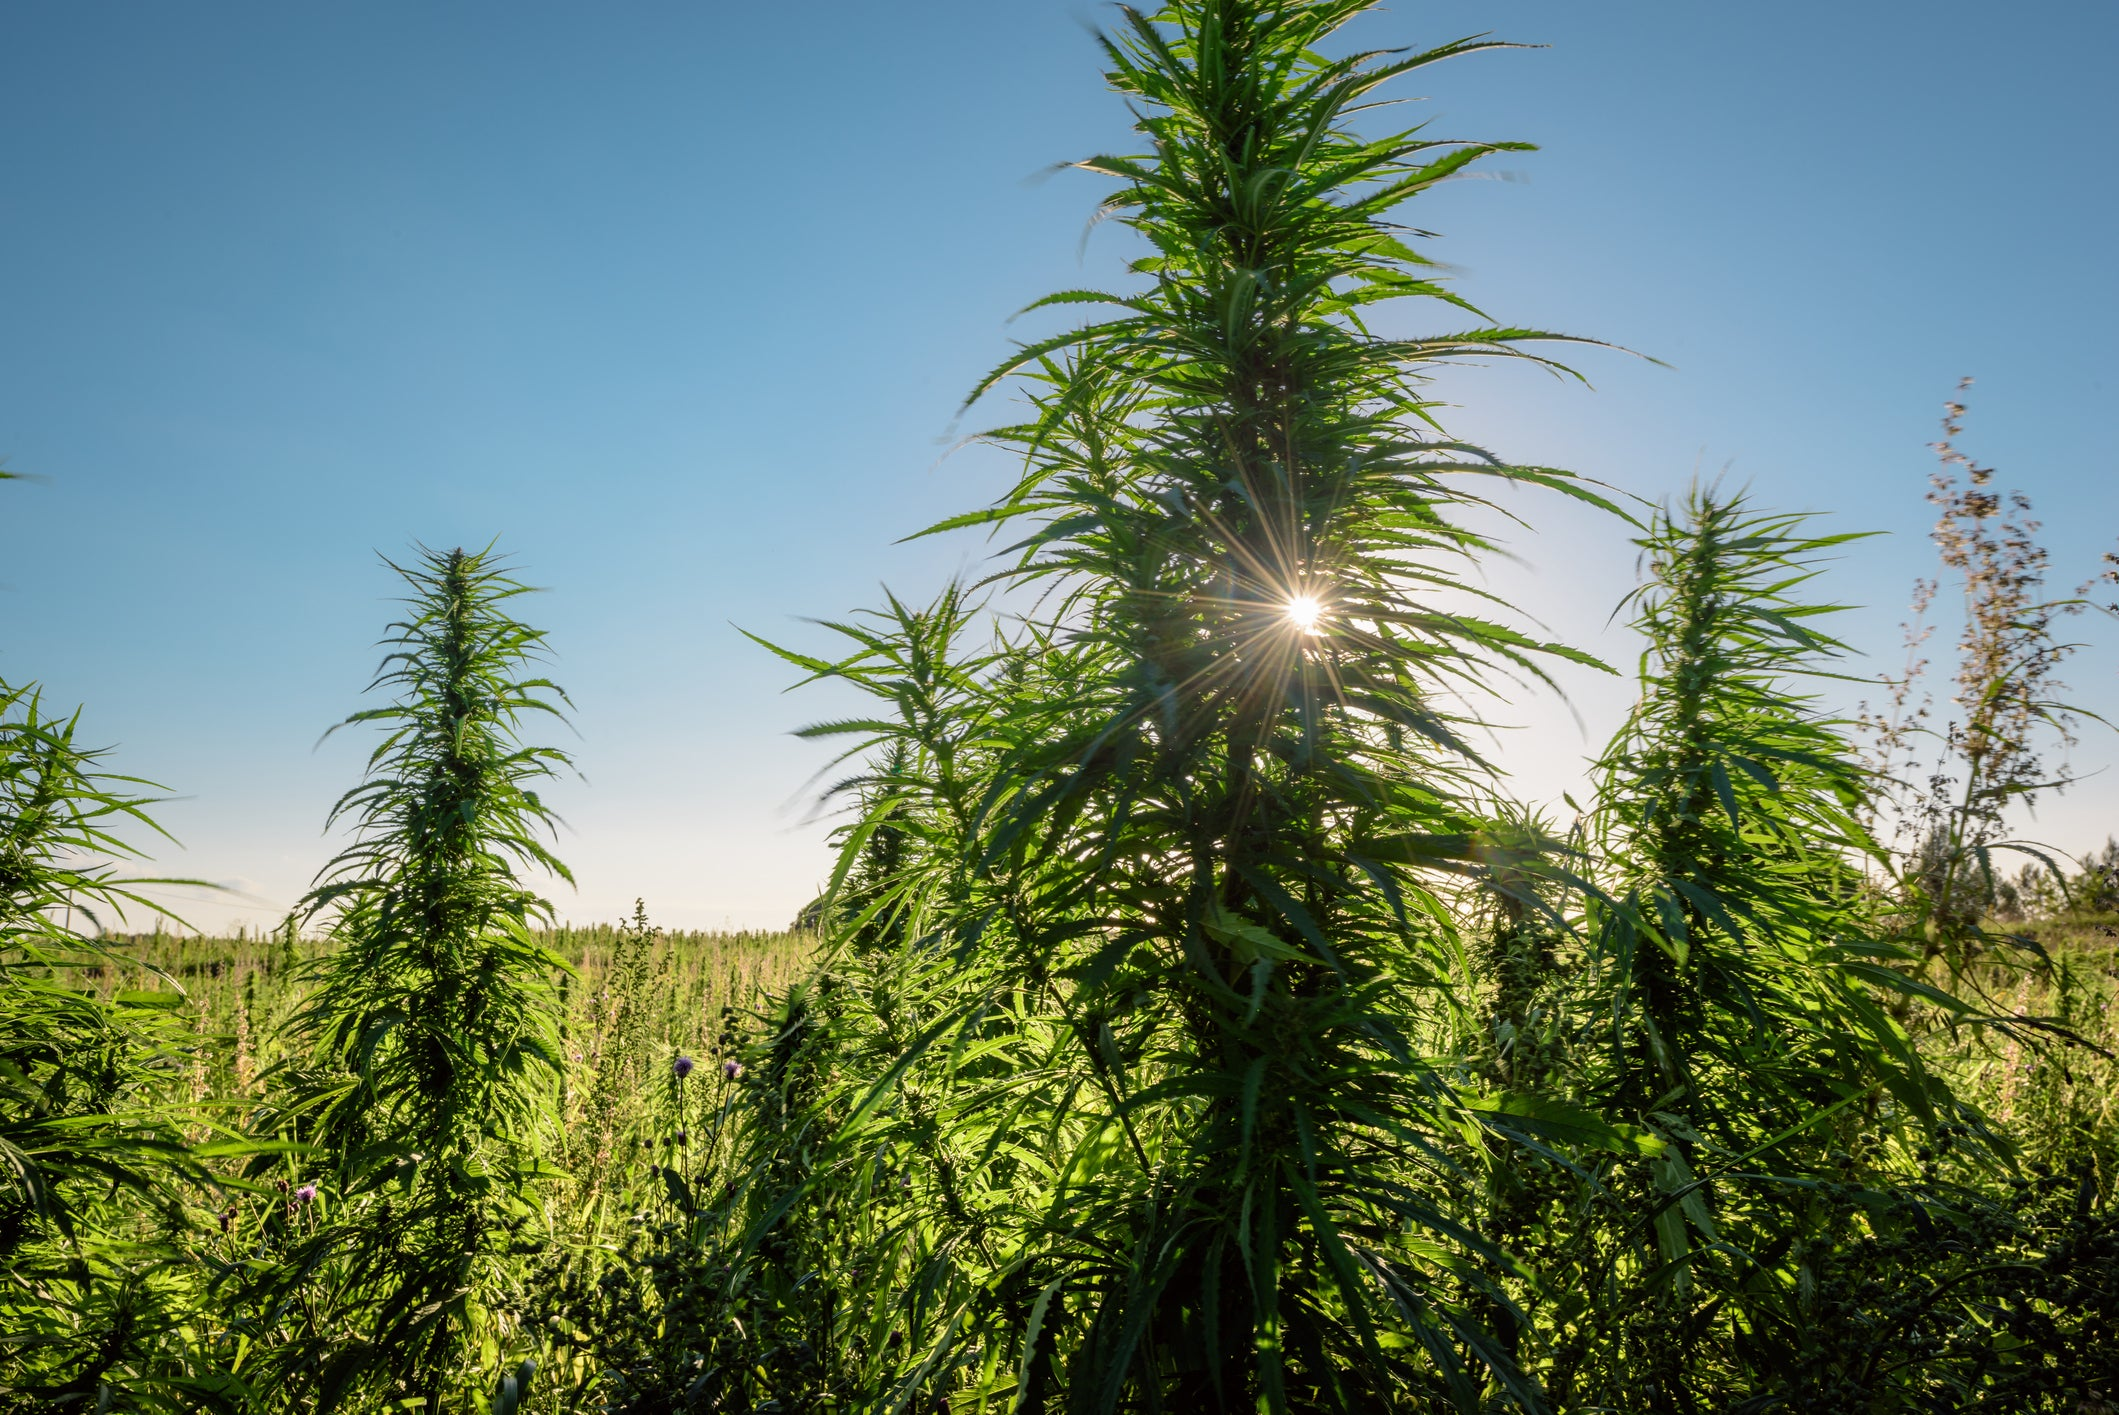 An up-close view of tall hemp plants, with the sun hiding behind the plants.